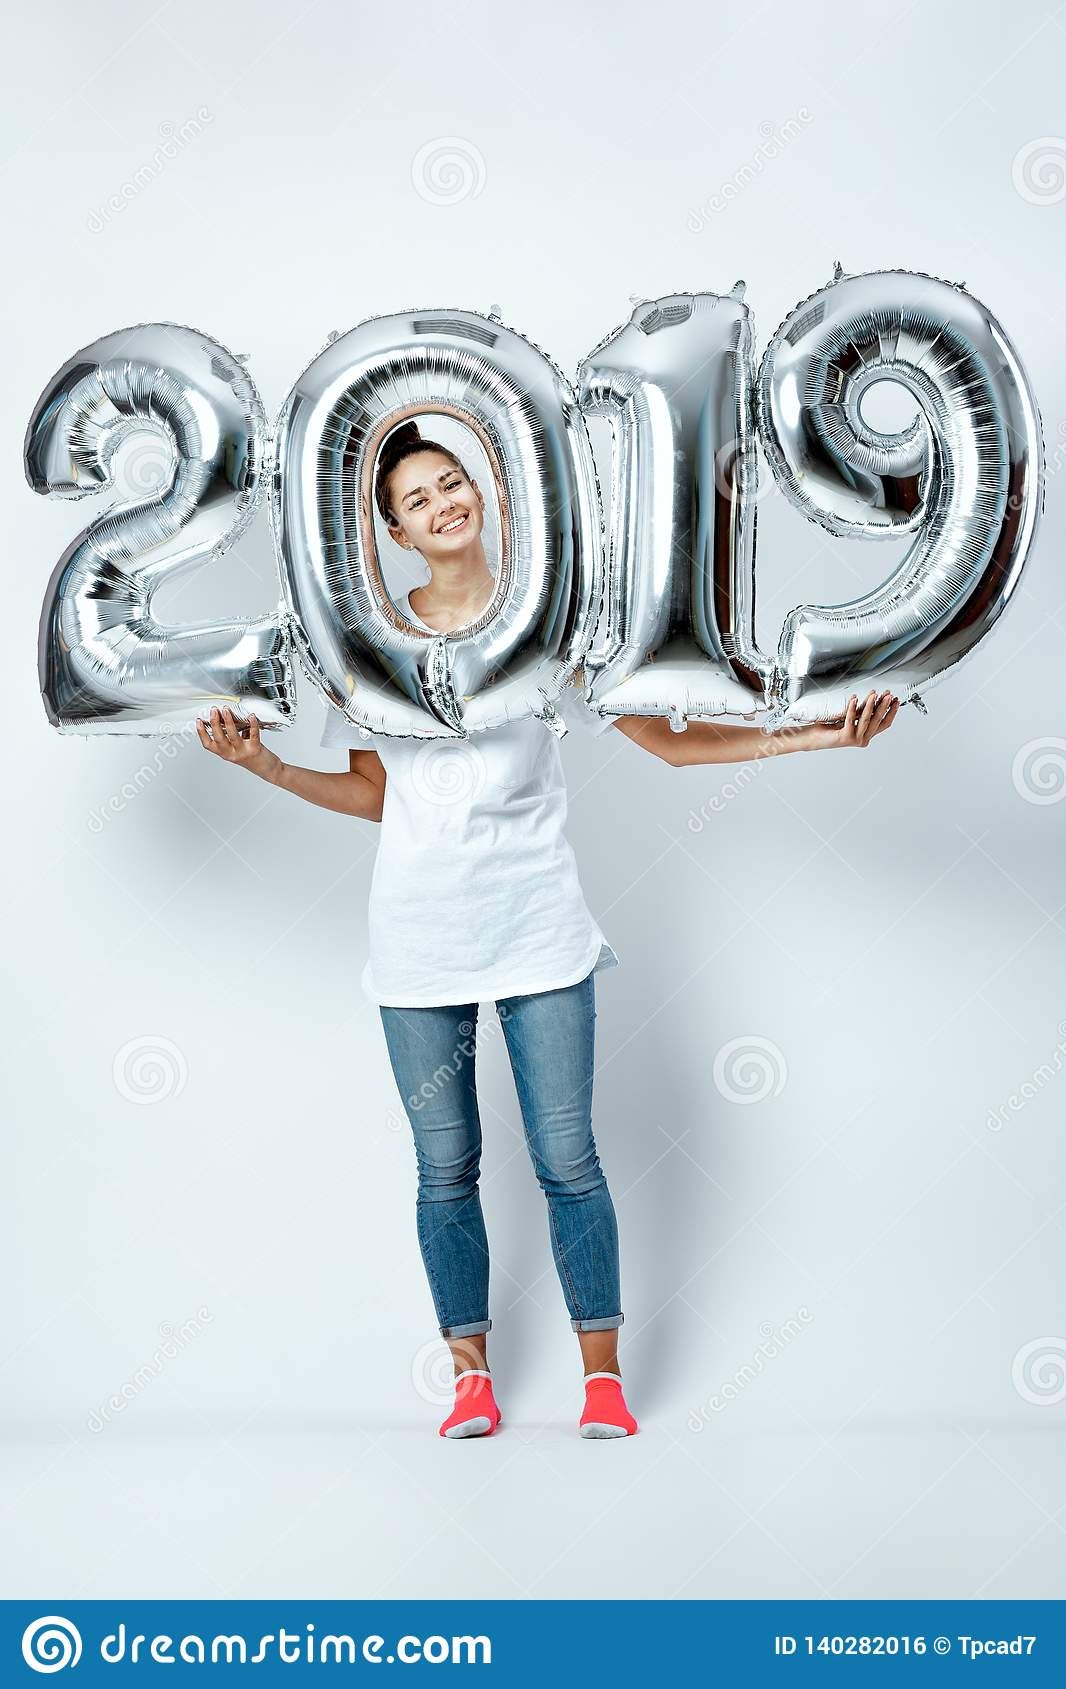 Nice funny girl dressed in white t-shirt, jeans and pink socks holding balloons in the shape of numbers 2019 on the